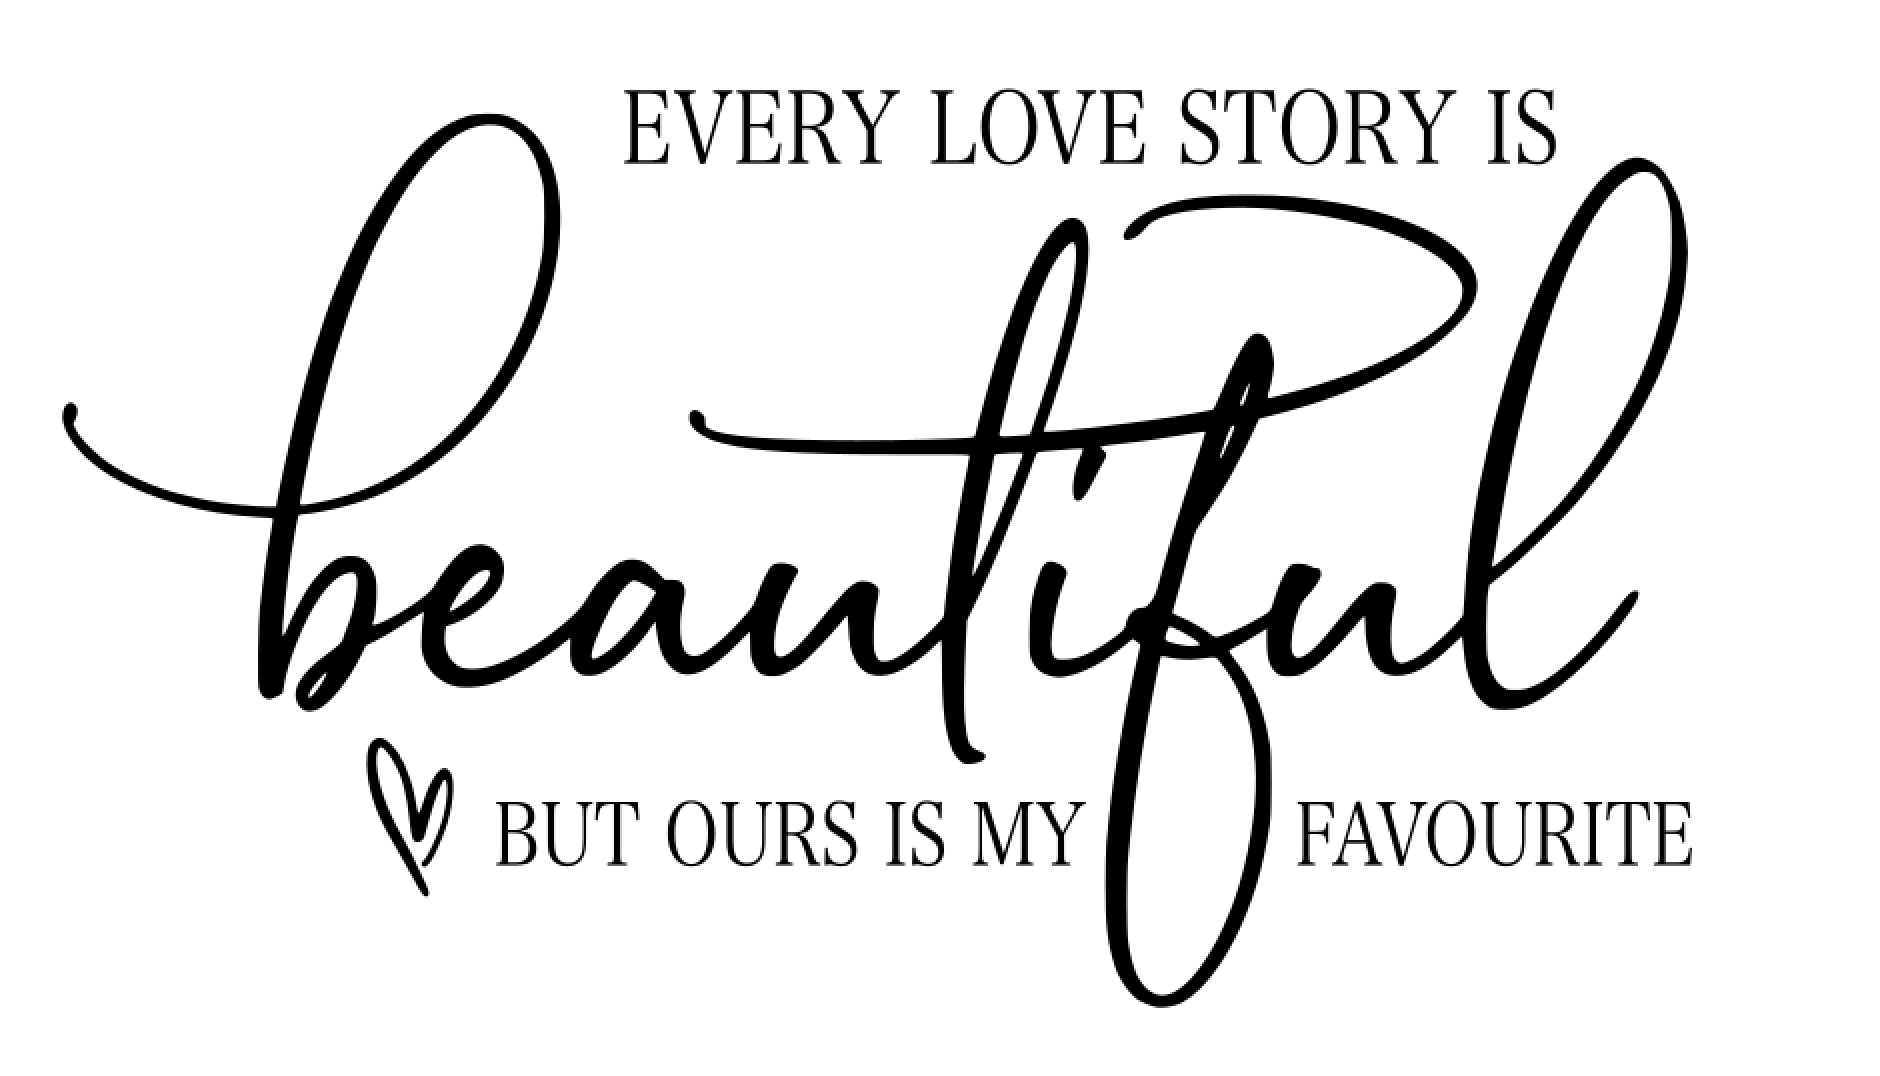 R7 Every love story is beautiful...